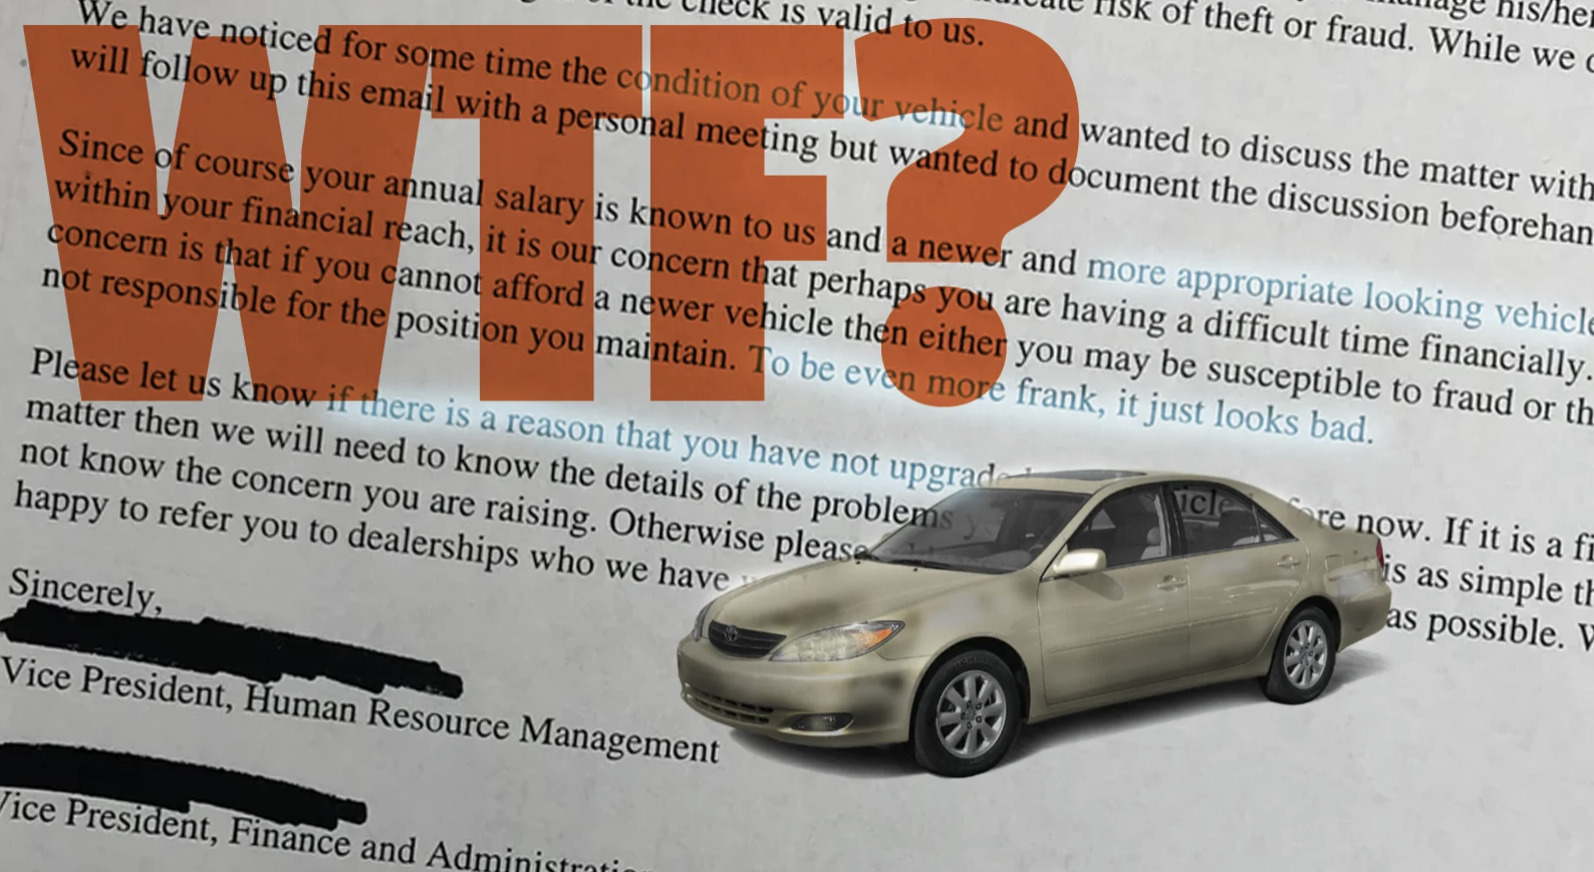 That Awful Email About An Employee's Old Car May Not Be Real But I Still Cannot Abide